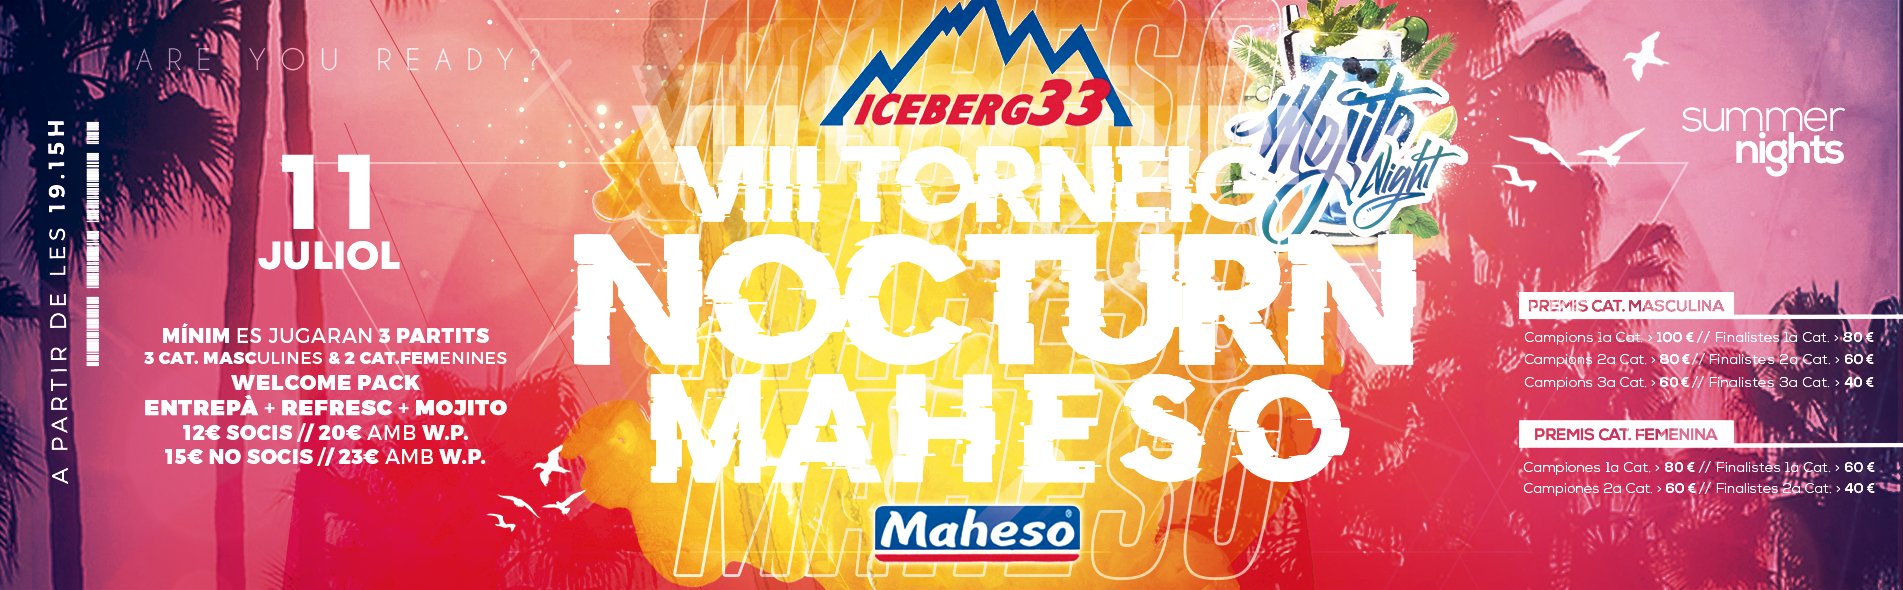 banner_web_nocturn_maheso_2020.png